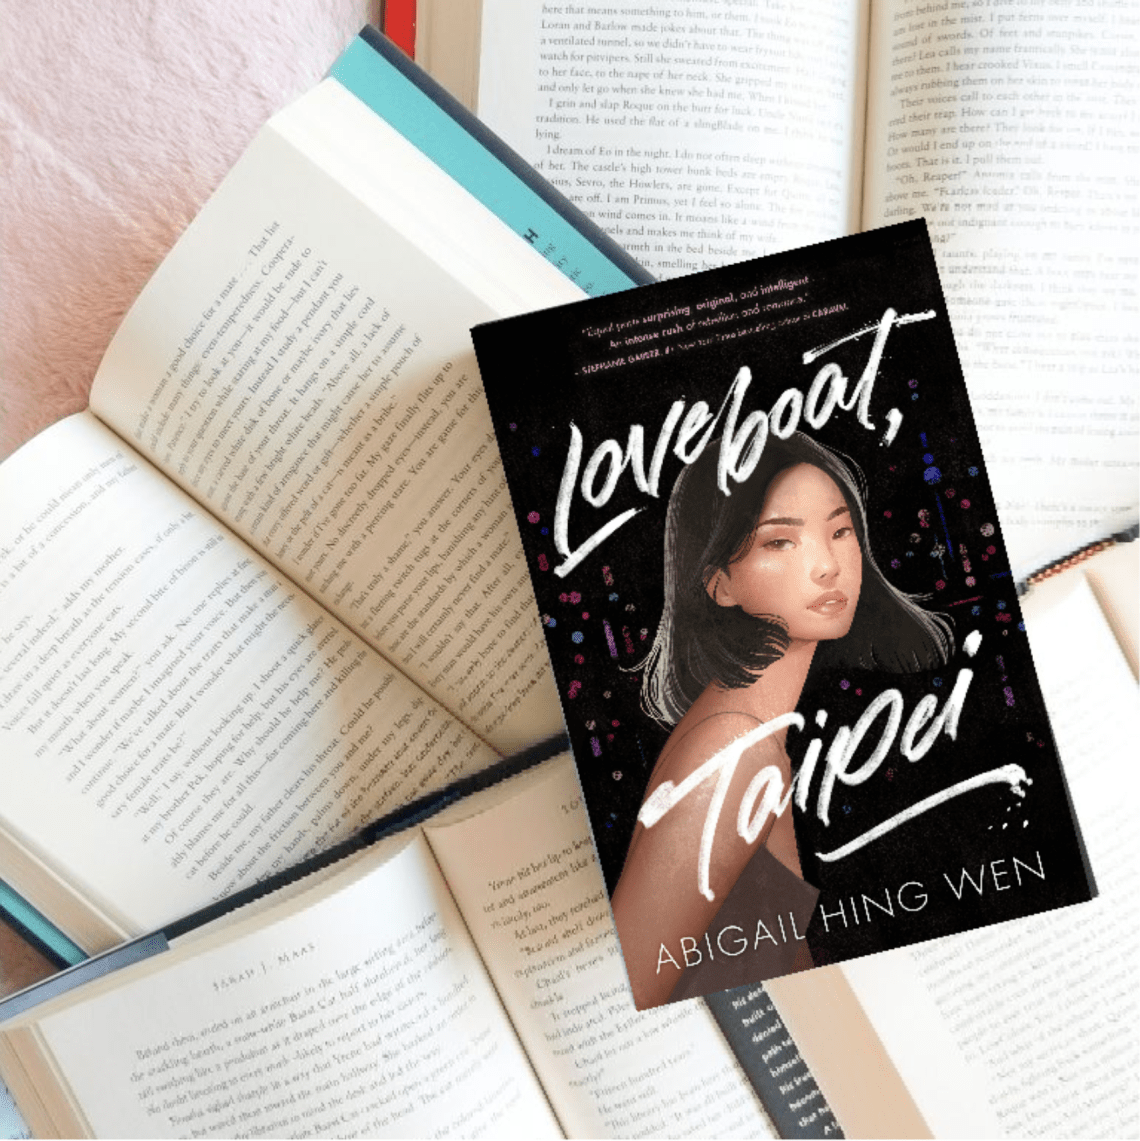 loveboat1 - Loveboat, Taipei Book Review